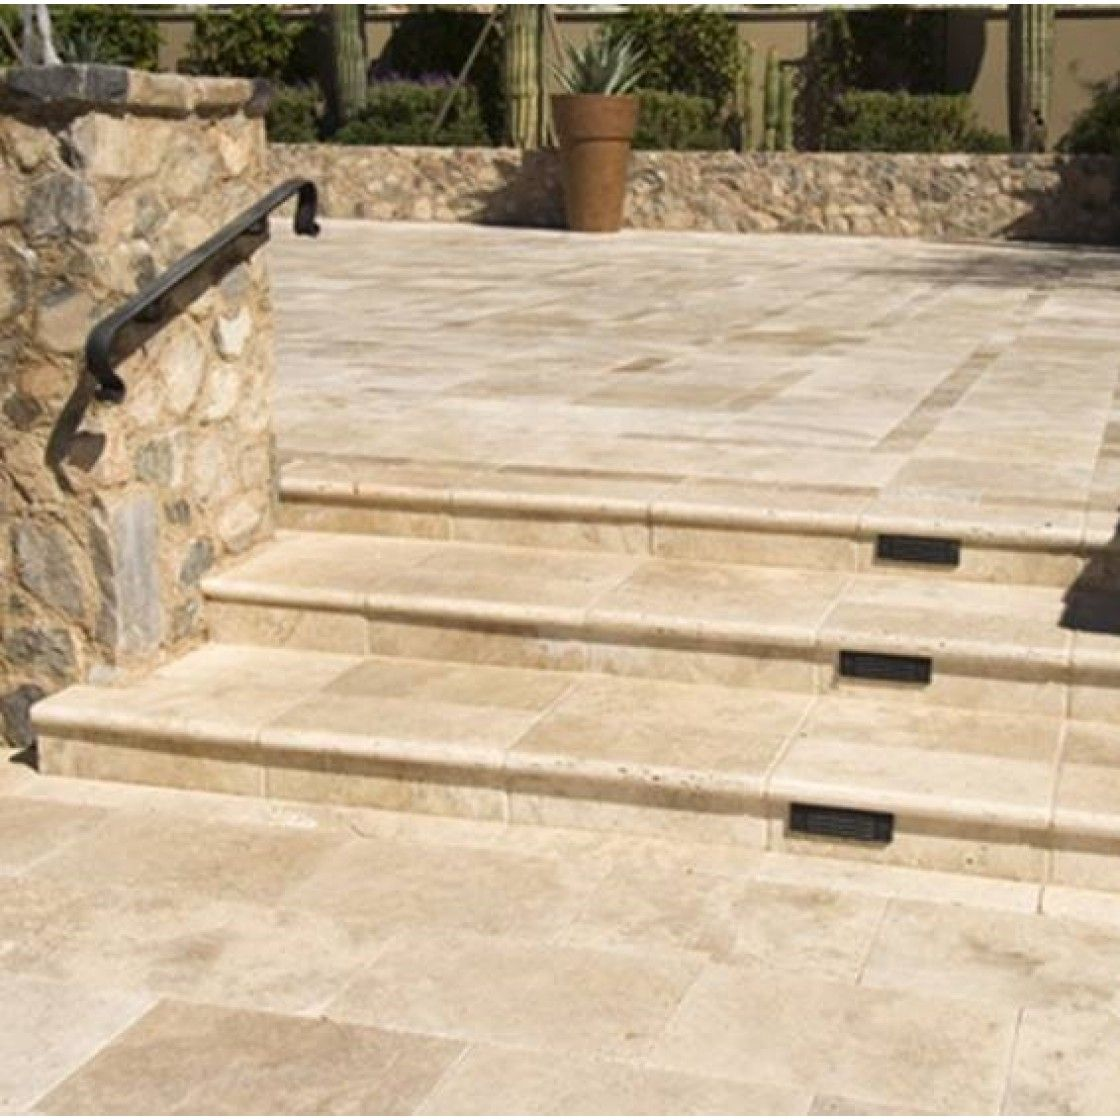 Light Travertine Outdoor Pavers Grouted In A Garden Travertine